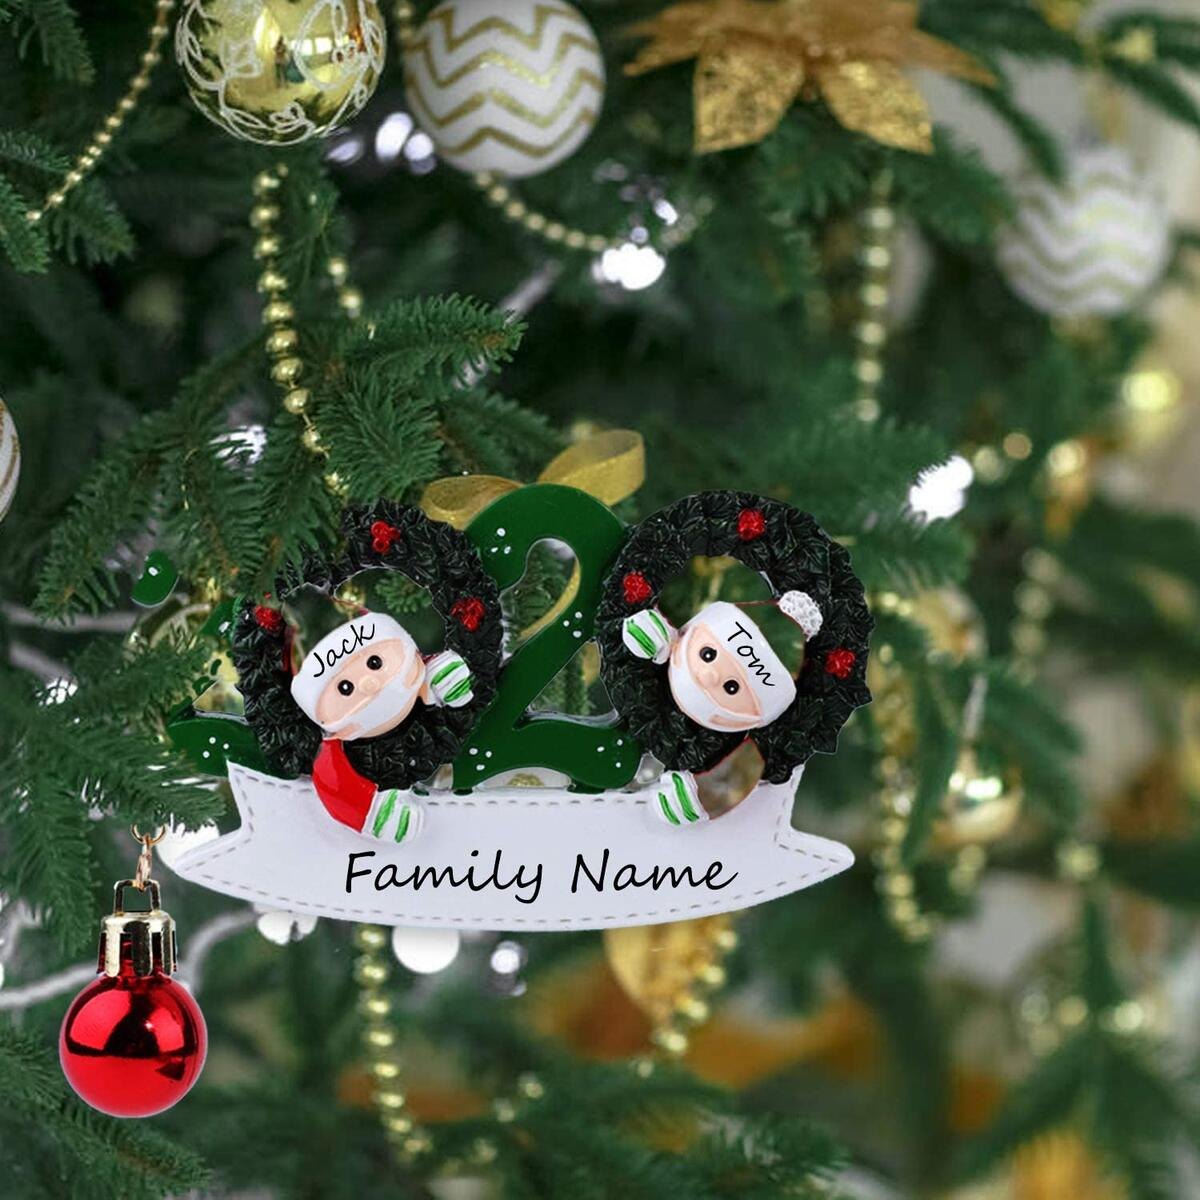 buddy4baby Personalized Christmas Hanging Ornaments - 2020 DIY Quarantine Survivor Couple with Wreath Face Mask Customized Home Decor (2 People)